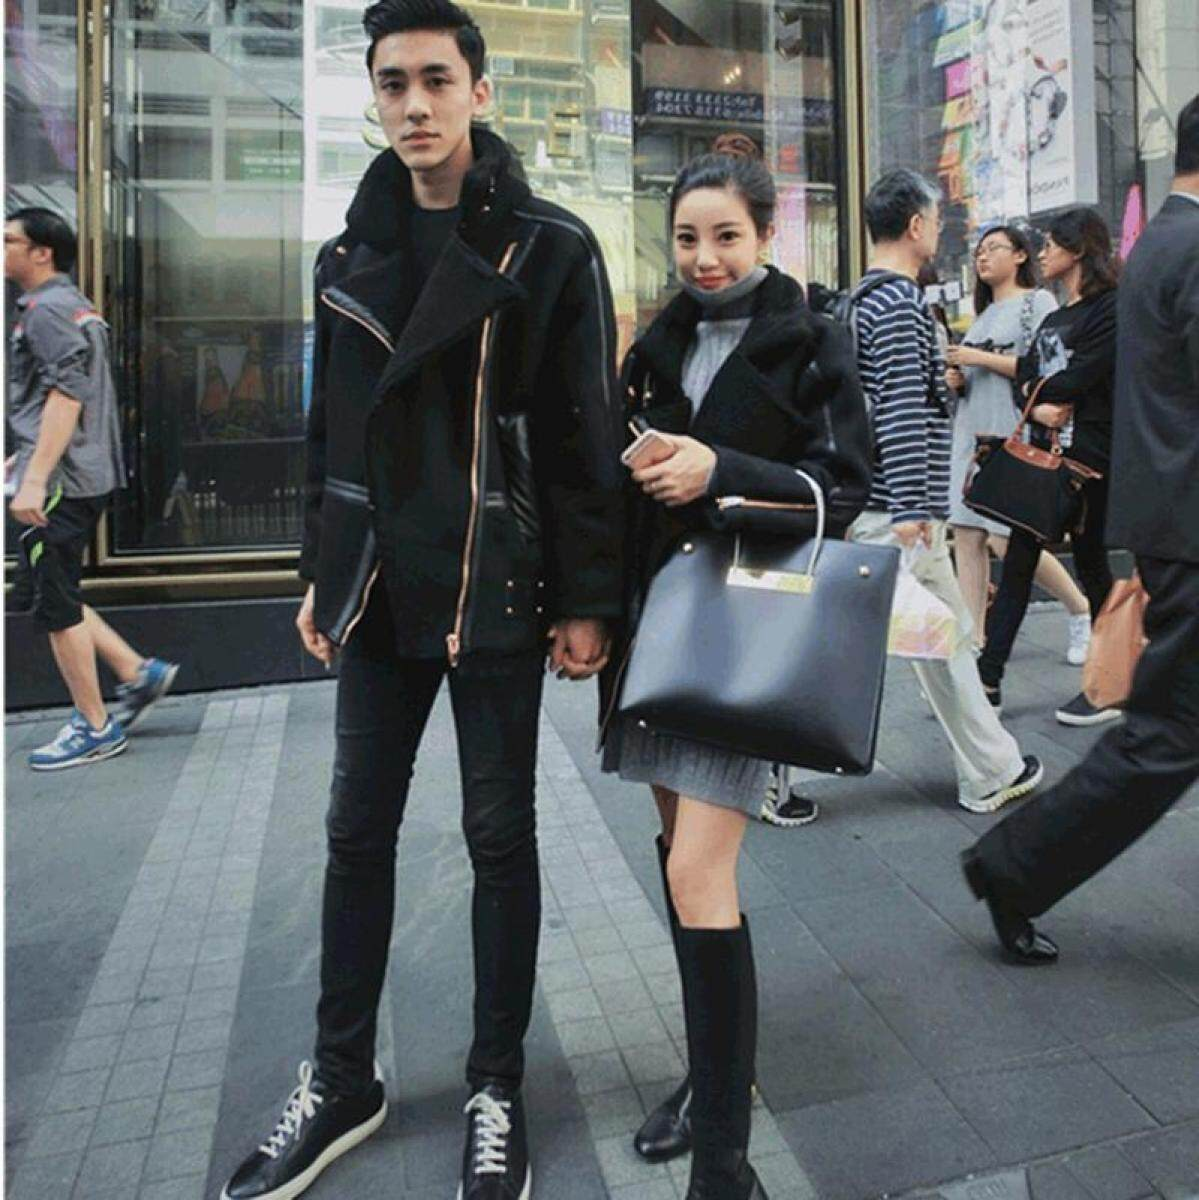 Suede Lambs Wool Short ji che fu South Korea Jacket Black Loose Couples Coat Fashion Men And Women Autumn And Winter Thick